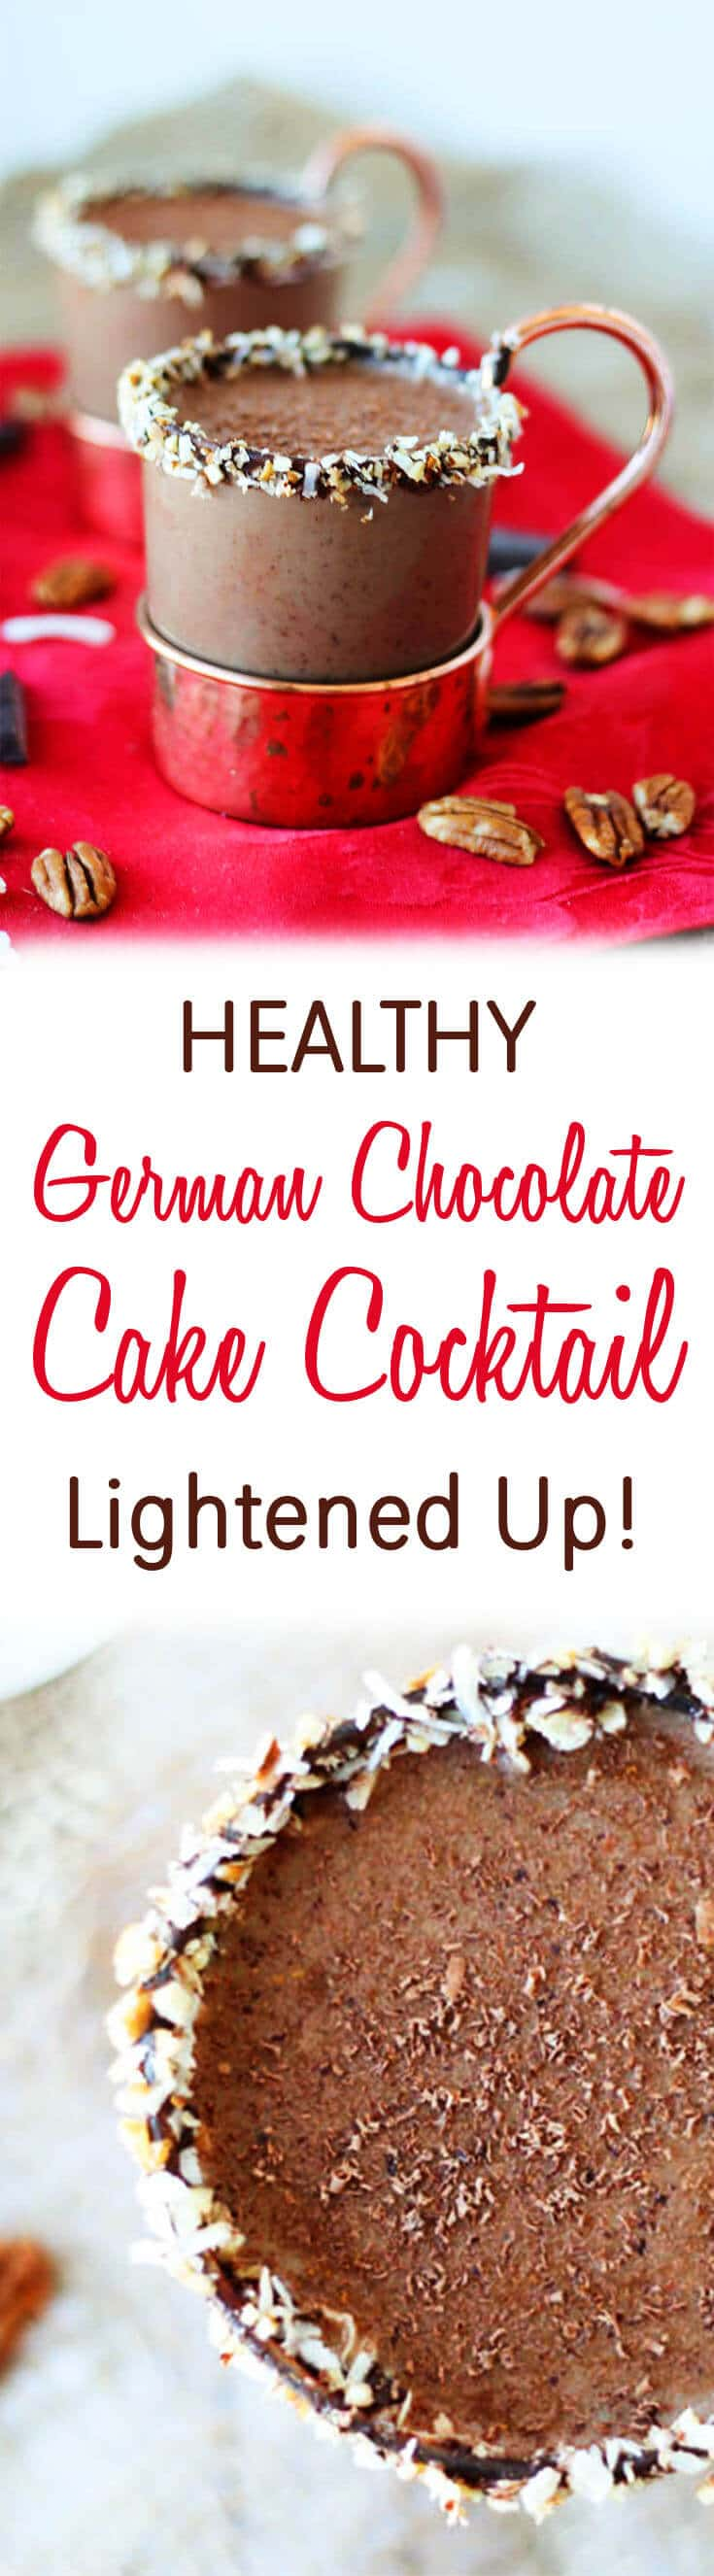 """A pinterest image of cocktails with the text overlay \""""Healthy German Chocolate Cake Cocktail Lightened Up!\"""""""